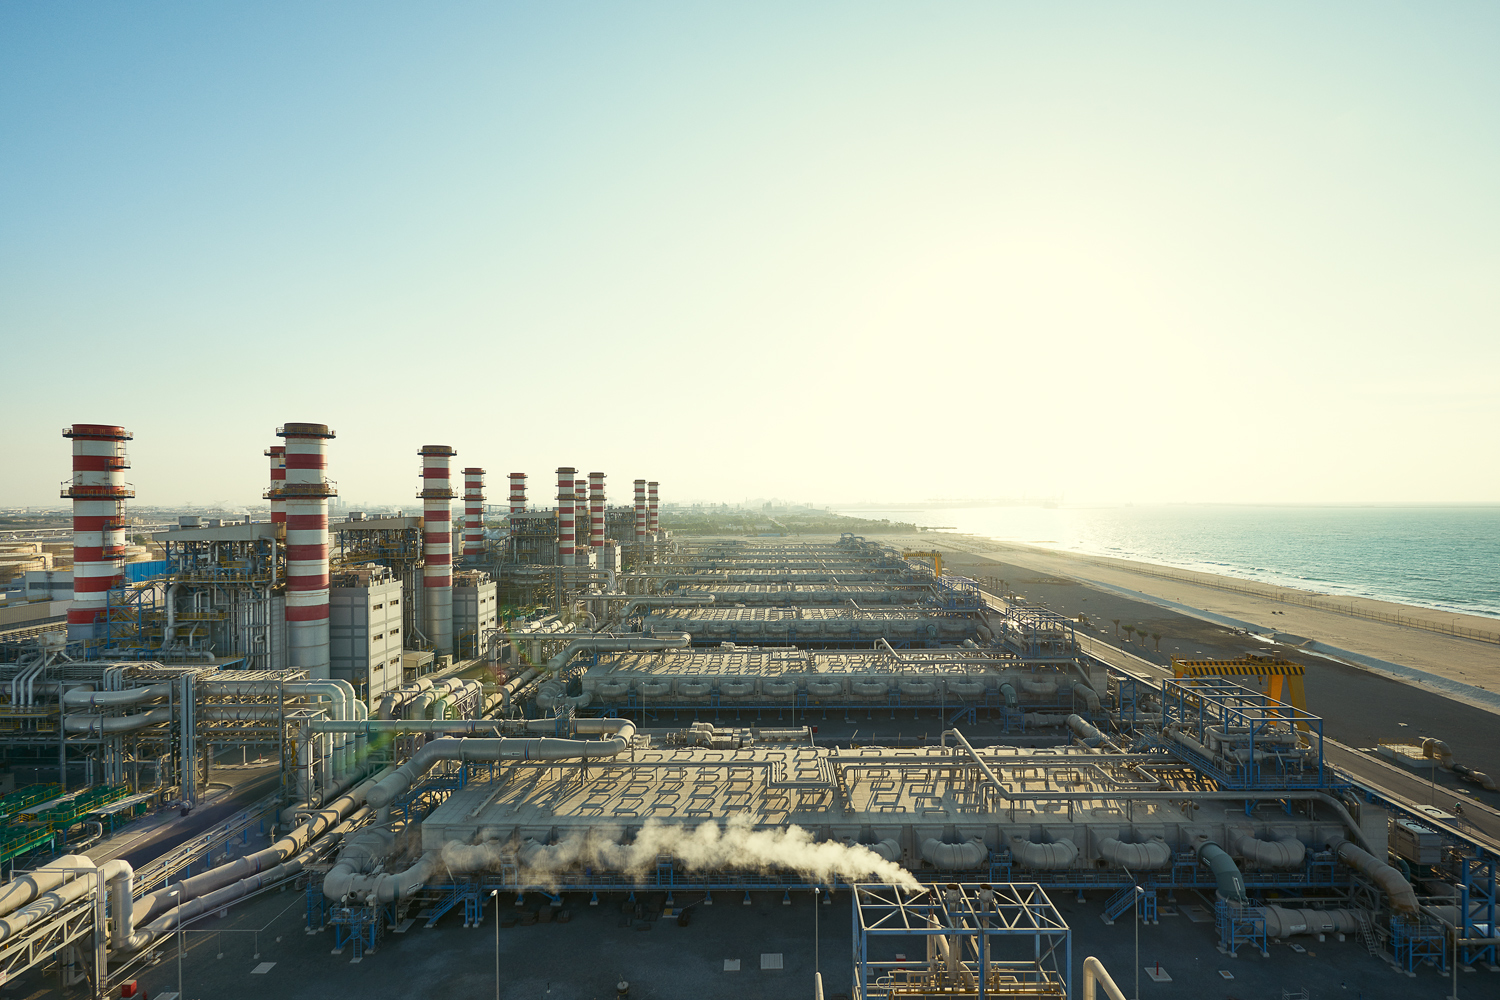 This sprawling power and desalination plant on Dubai's coast produces almost 8,000 megawatts of electricity and over 550 million US gallons of water a day.